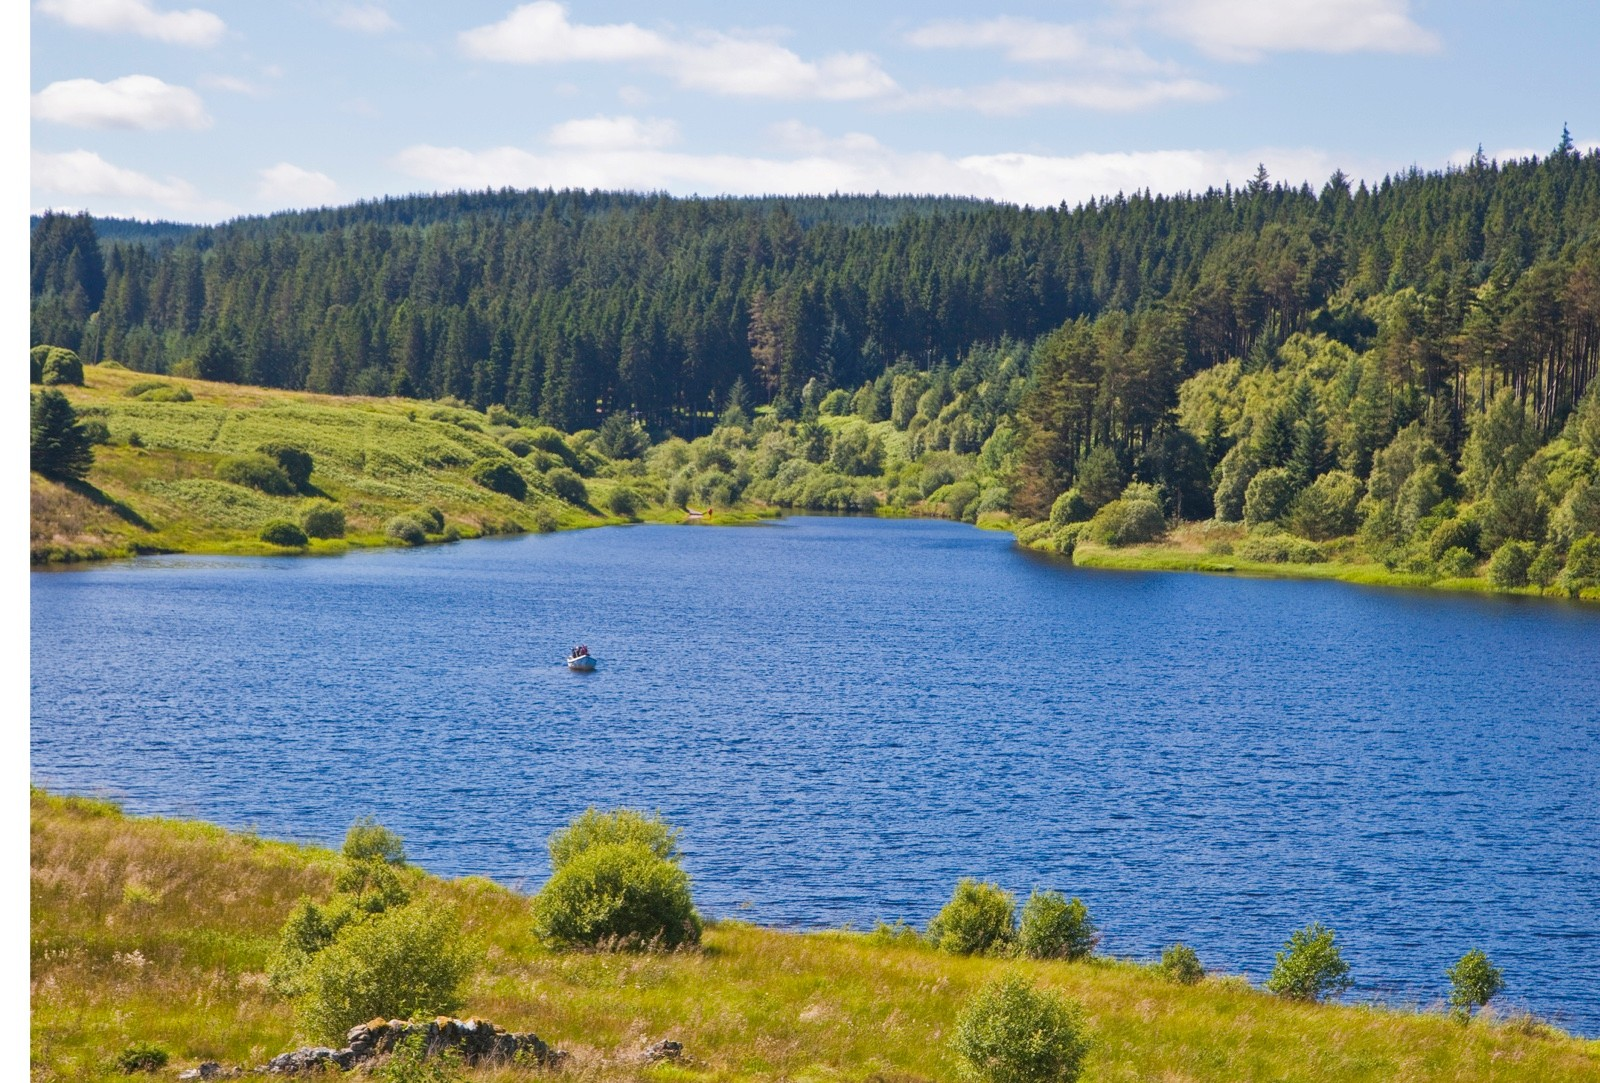 Kielder Water and forest, Northumberland